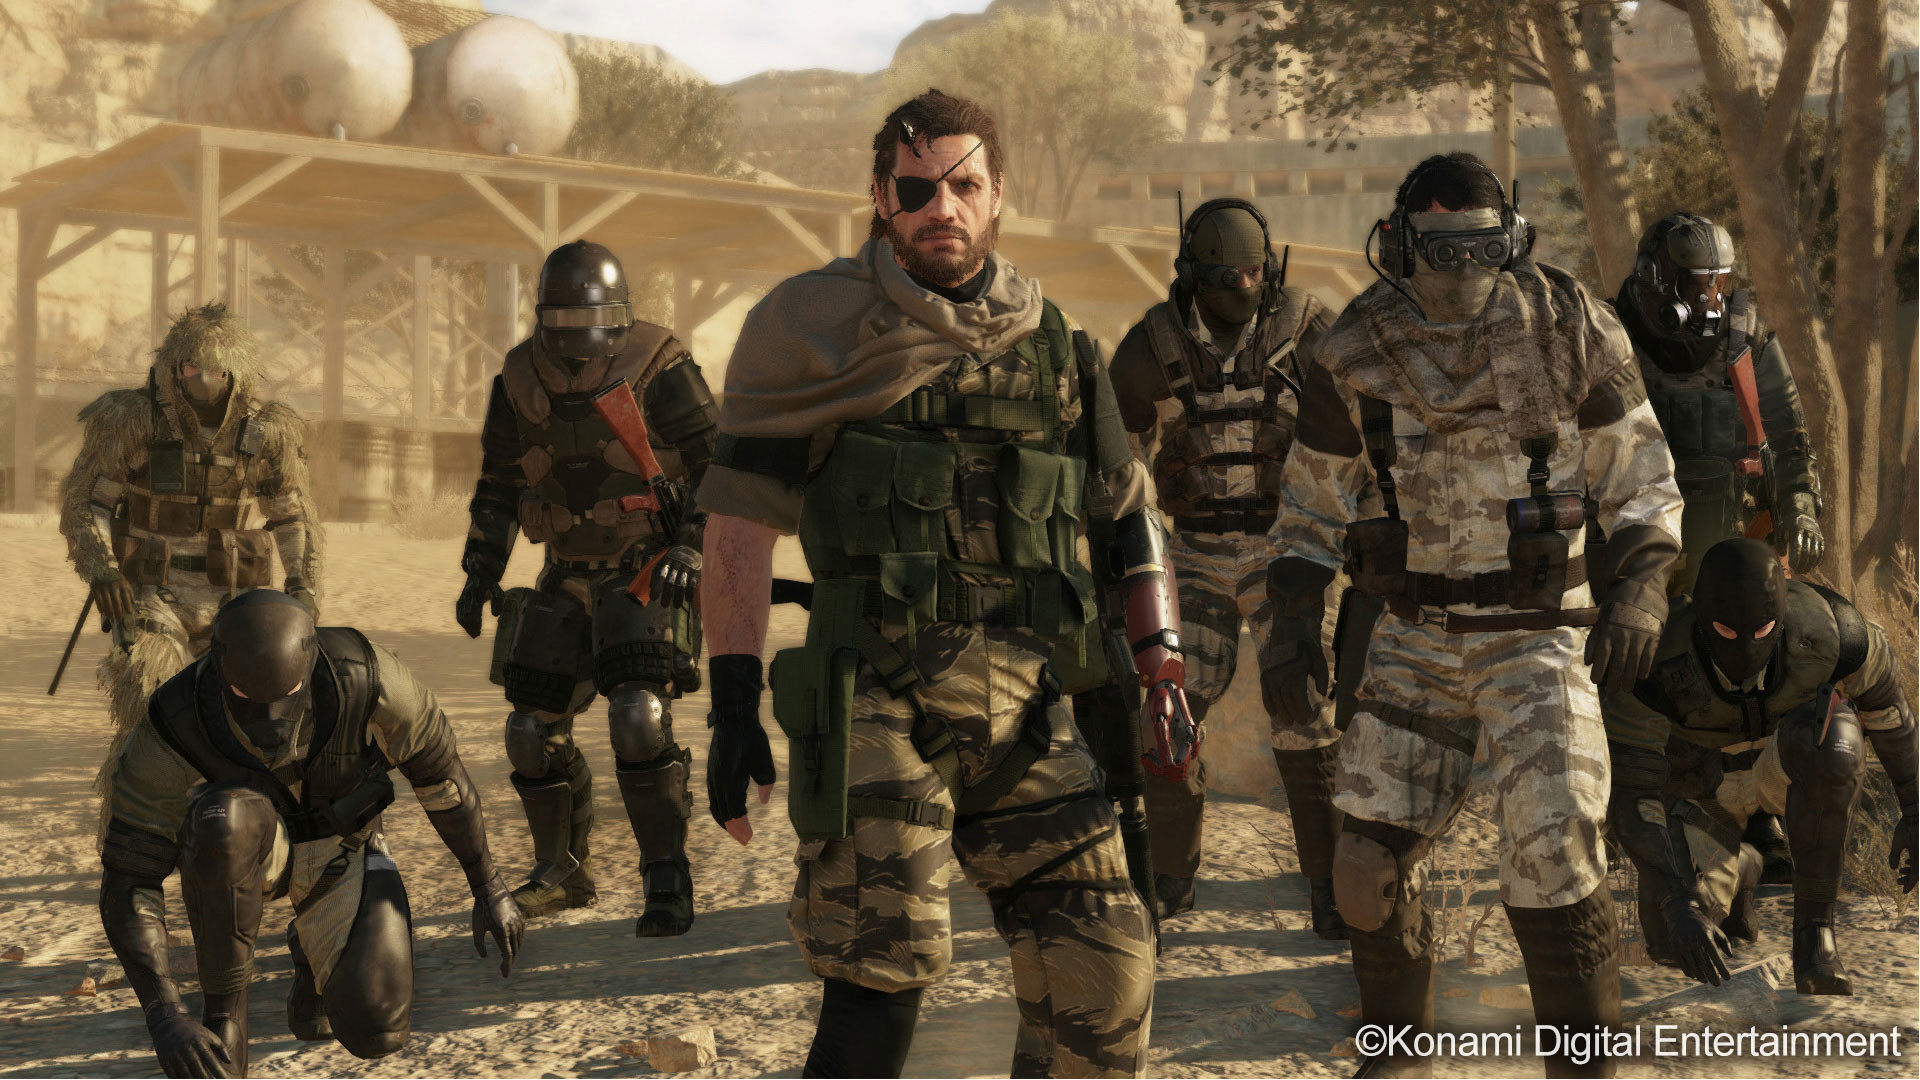 Res: 1920x1080, Metal Gear Online: Artwork, screenshots and some information